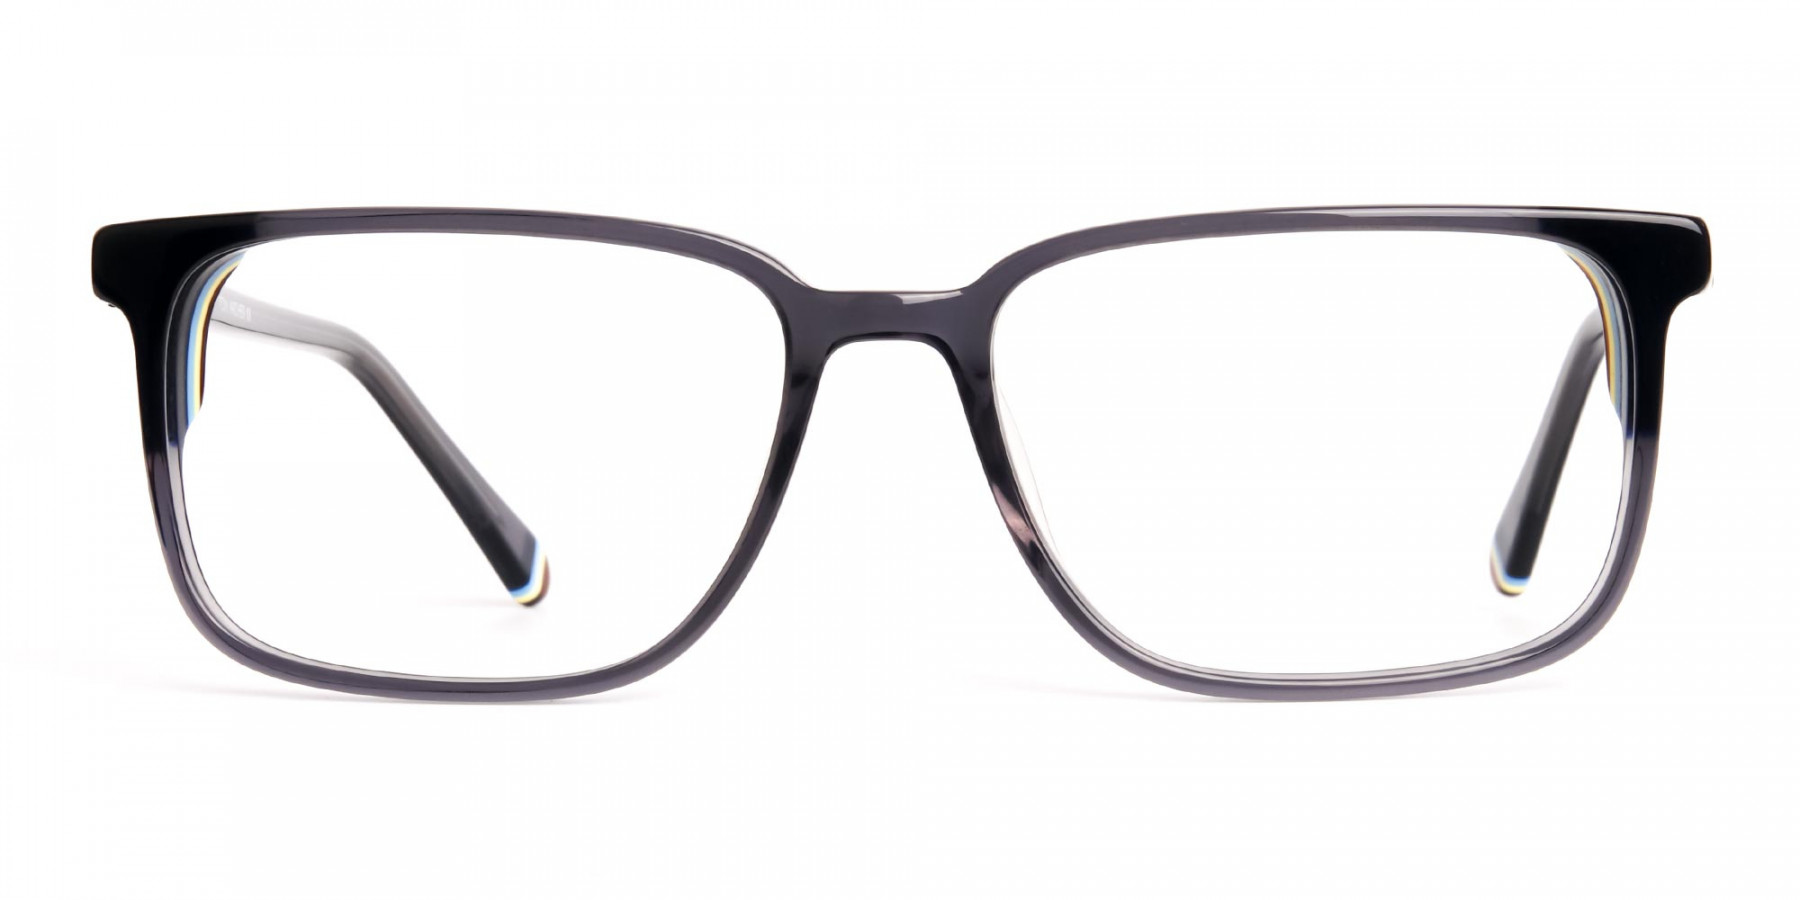 dark-grey-shiny-rectangular-glasses-frames-1